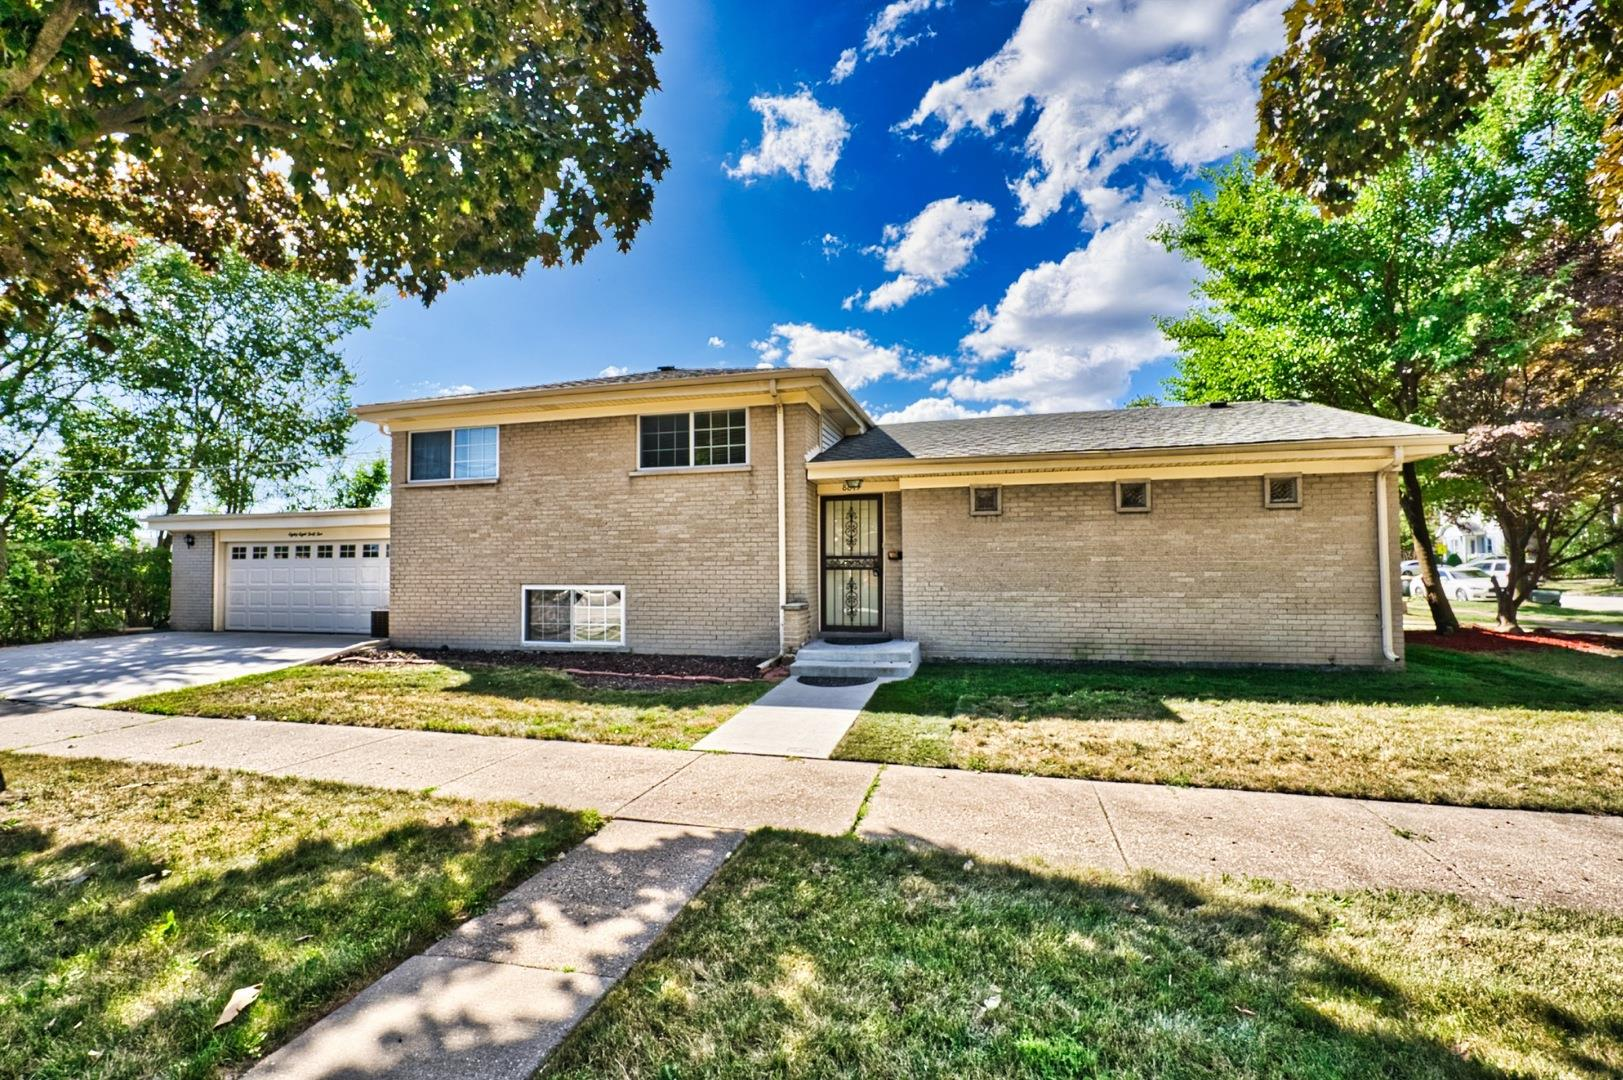 8845 SAYRE Avenue, Morton Grove, IL 60053 - #: 10824240